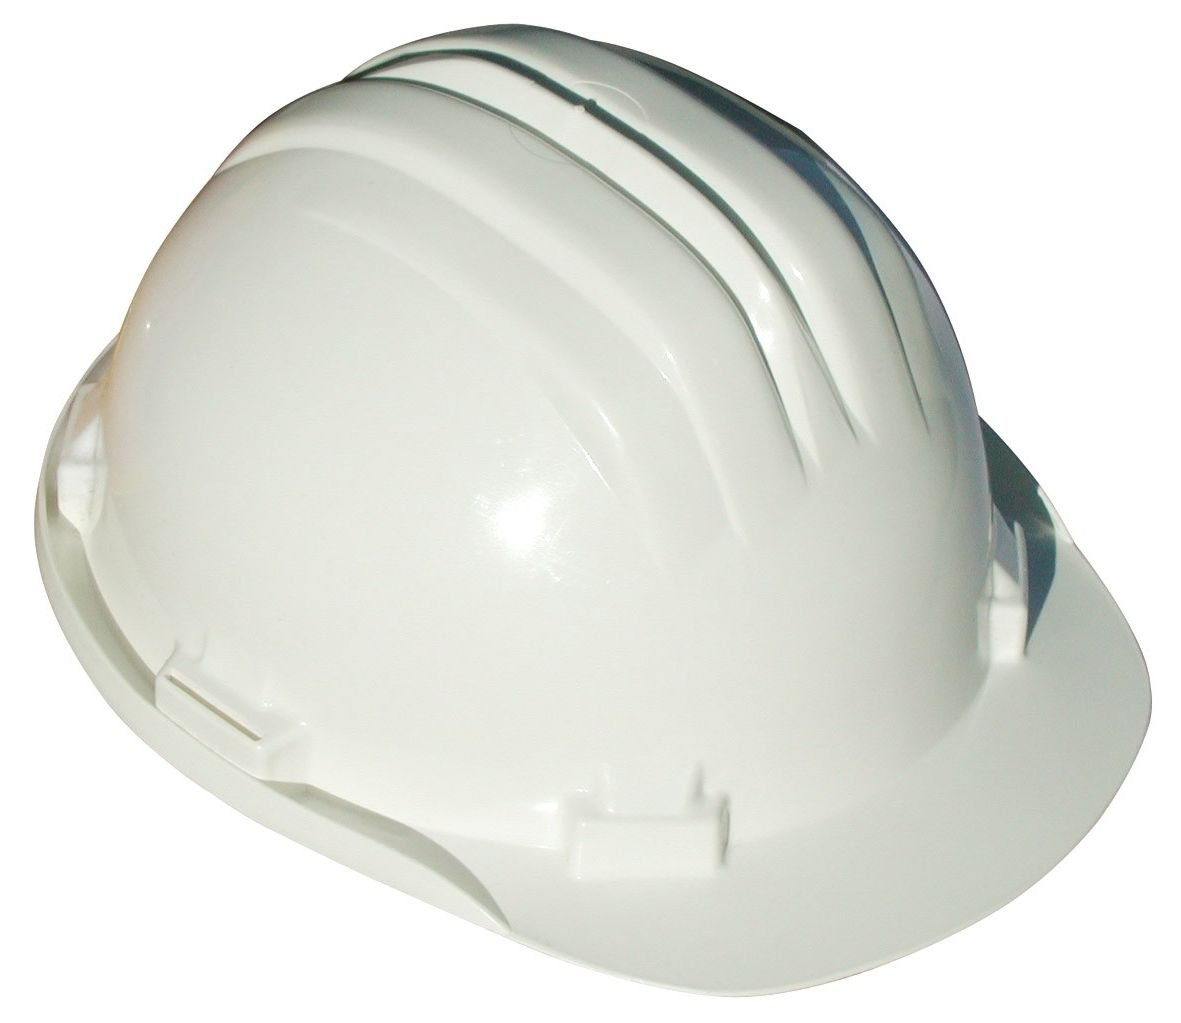 Climax casco de seguridad blanco EN397: 1995 + A1: 2000: Amazon.es ...